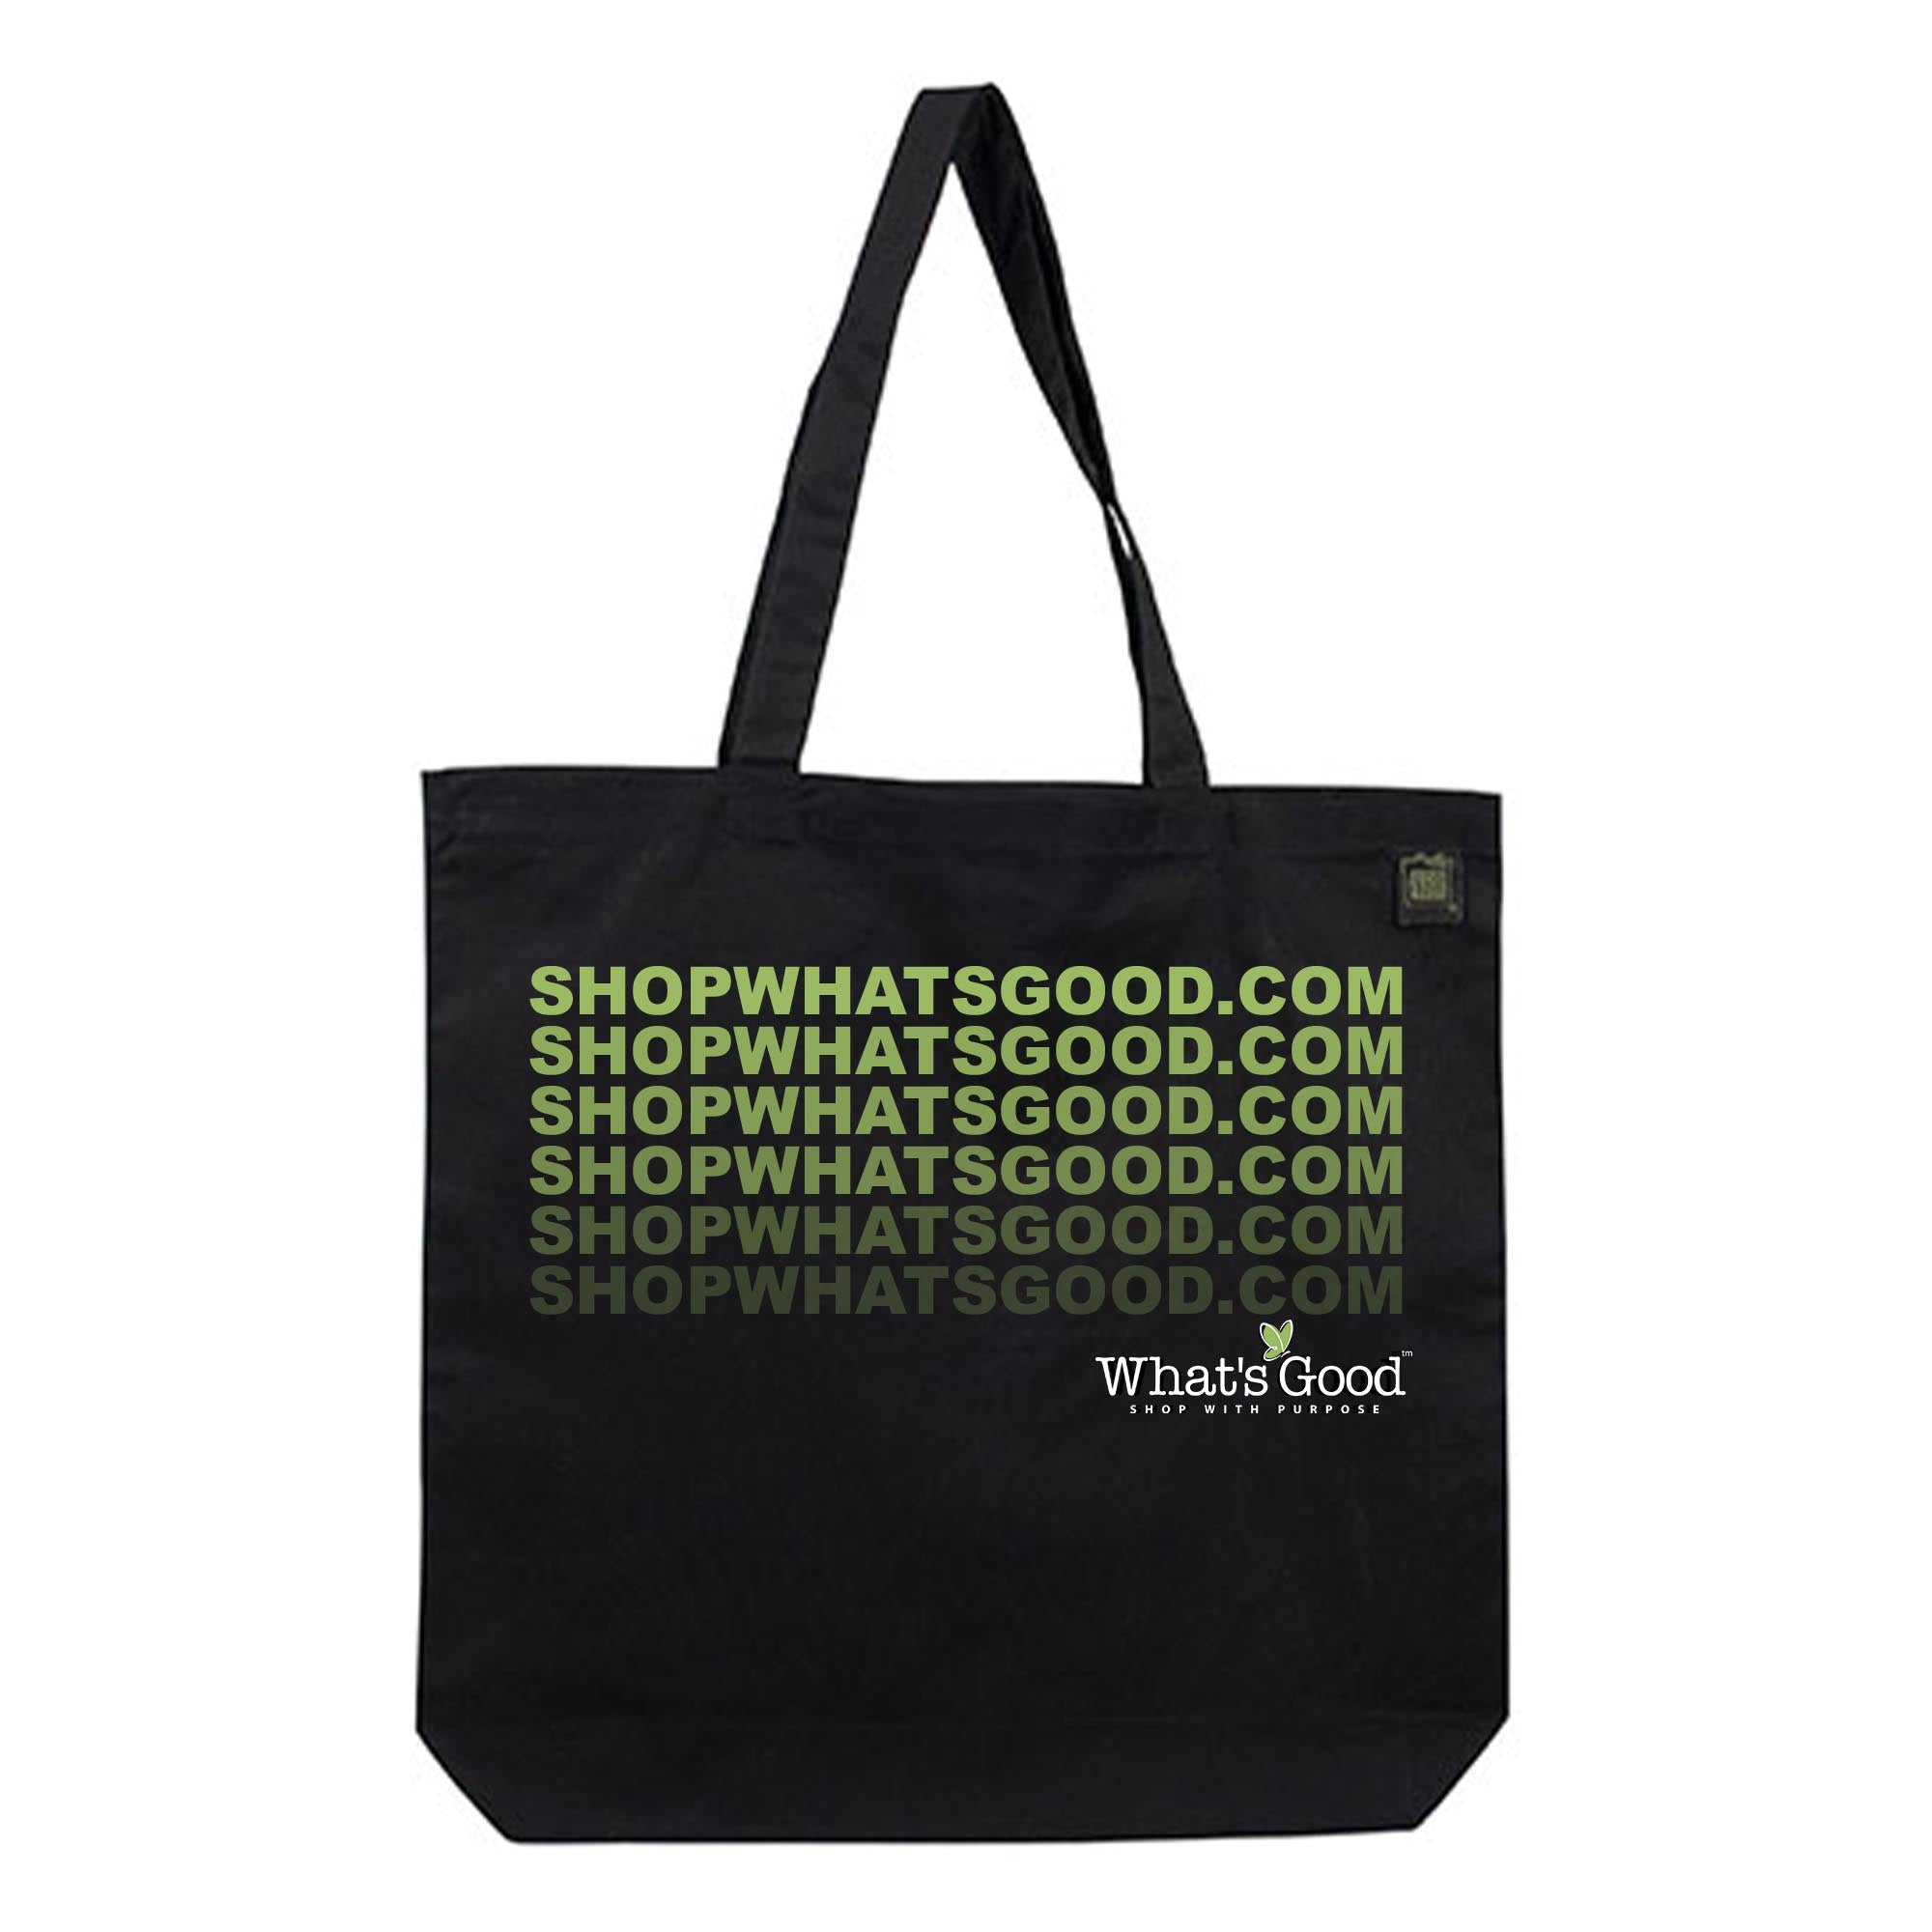 black reusable shop whats good eco bag with fading green text and whats good logo